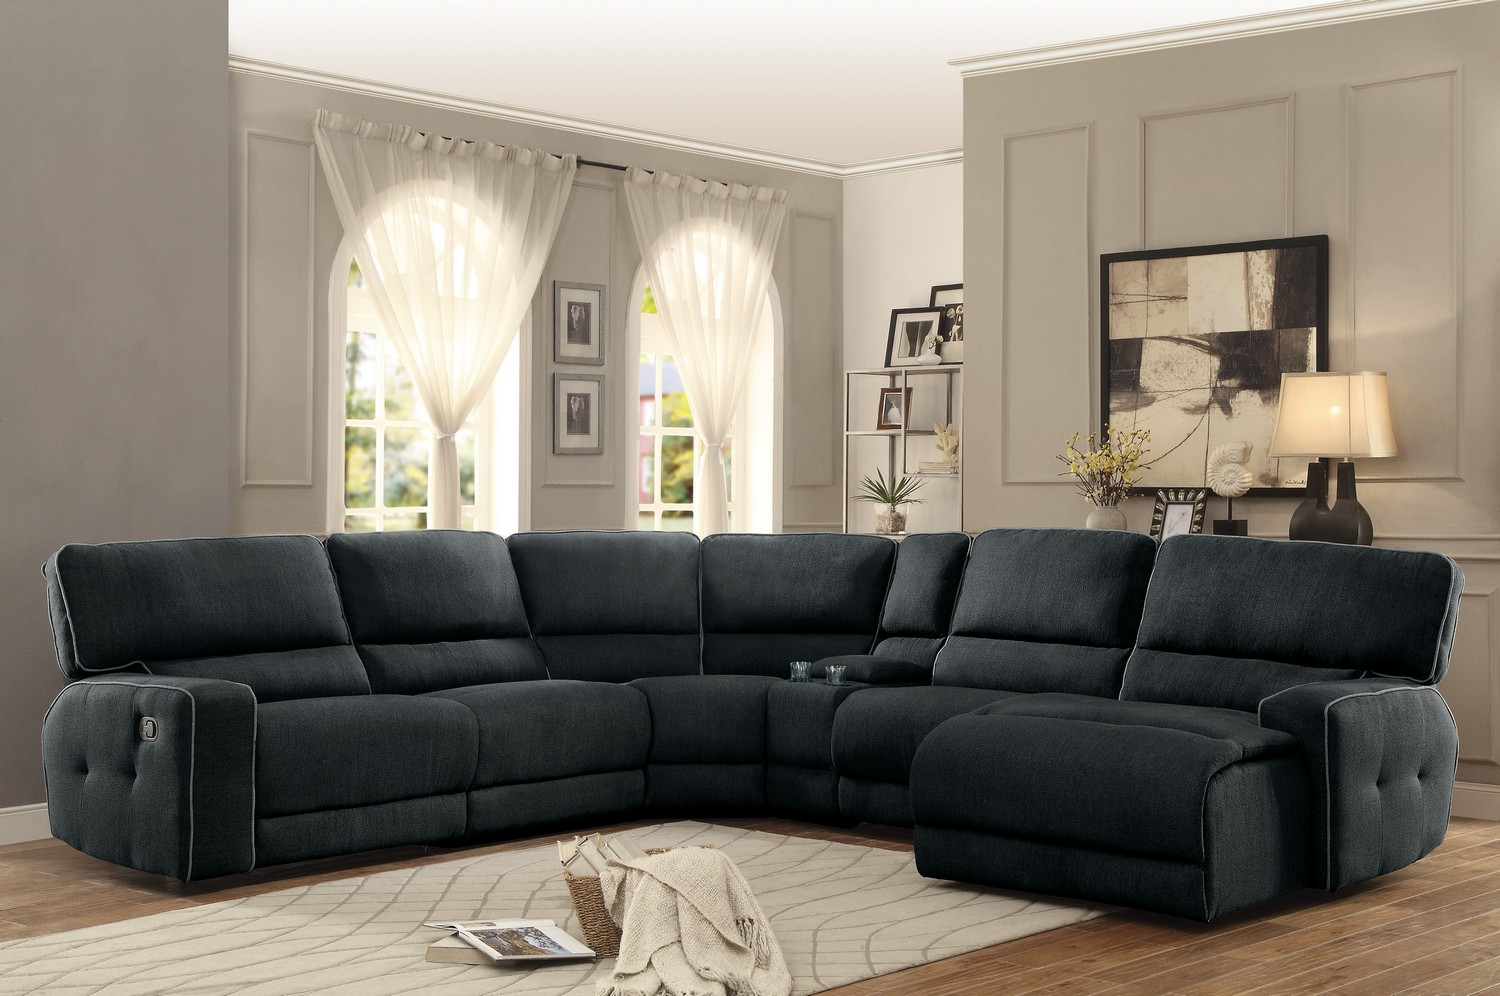 Homelegance keamey reclining sectional sofa set a for Dark grey couch